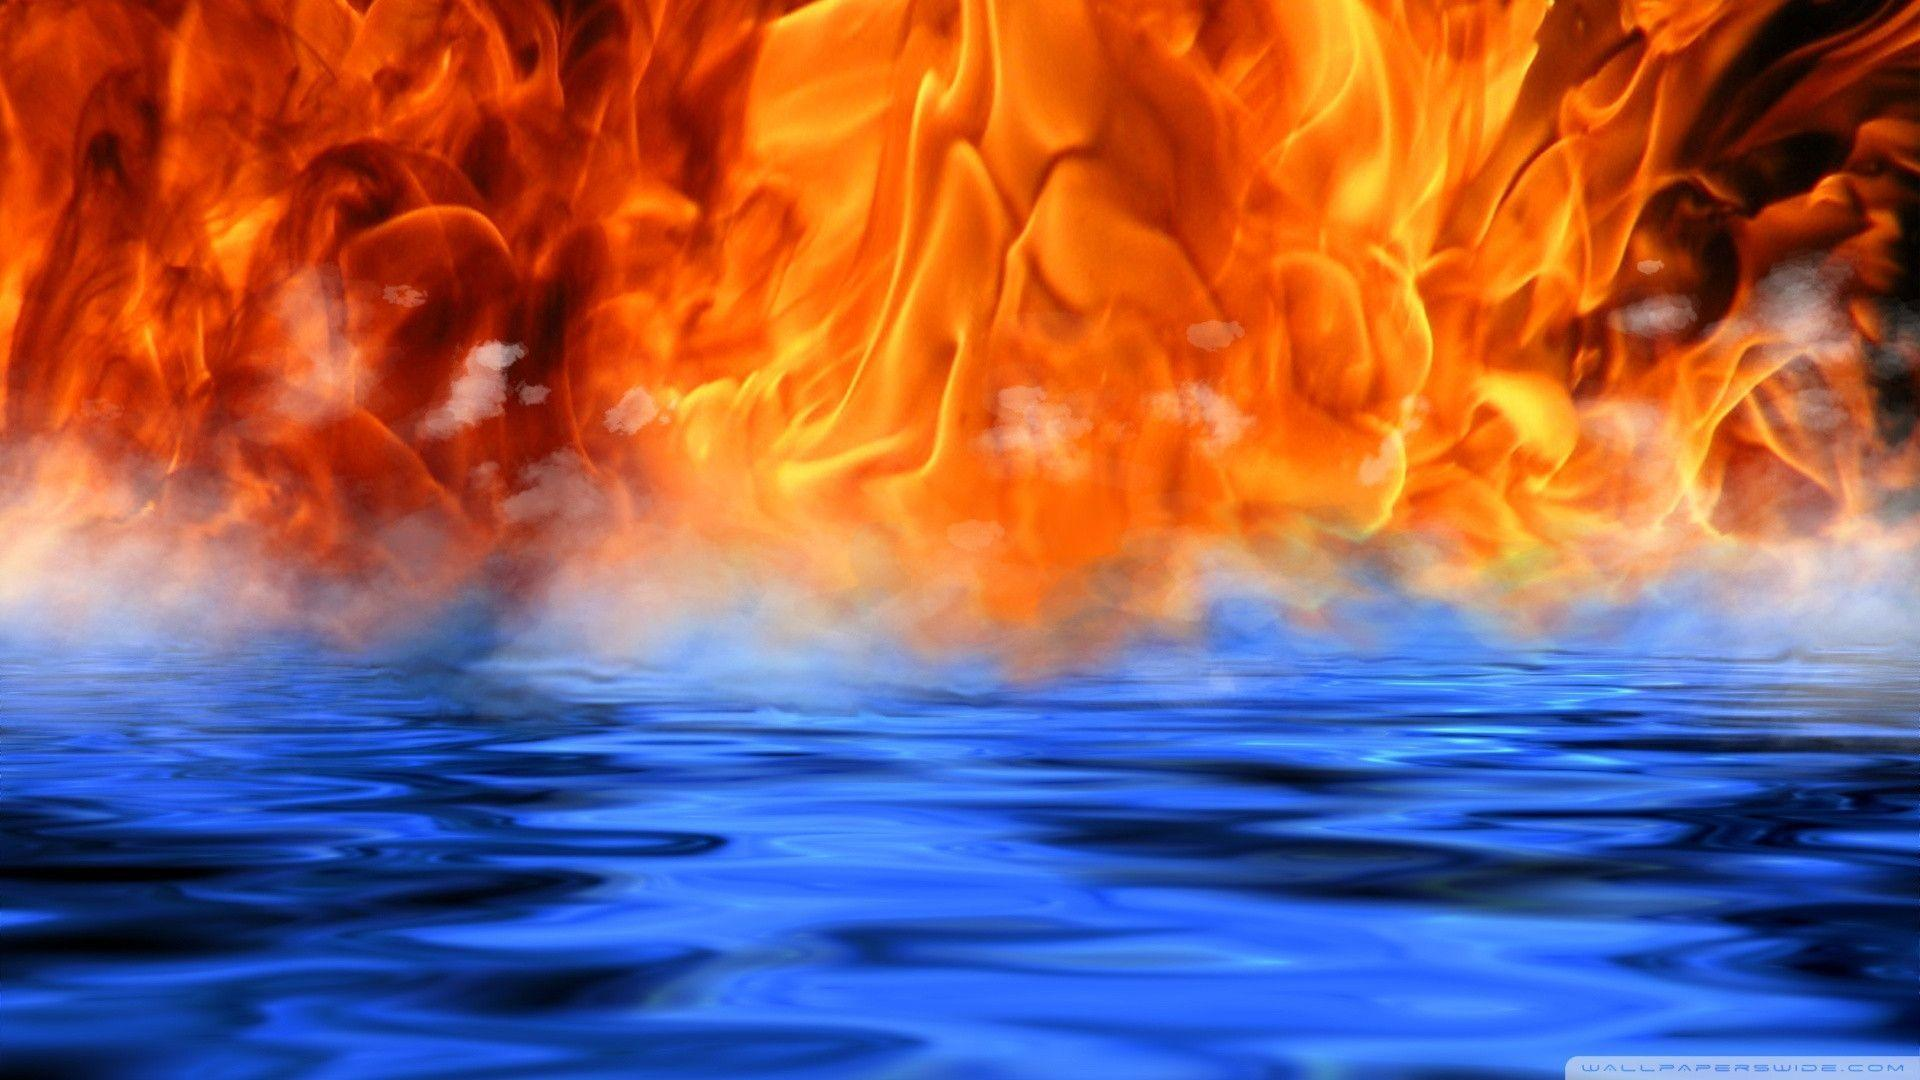 Cool Water And Fire Desktop HD Wallpaper